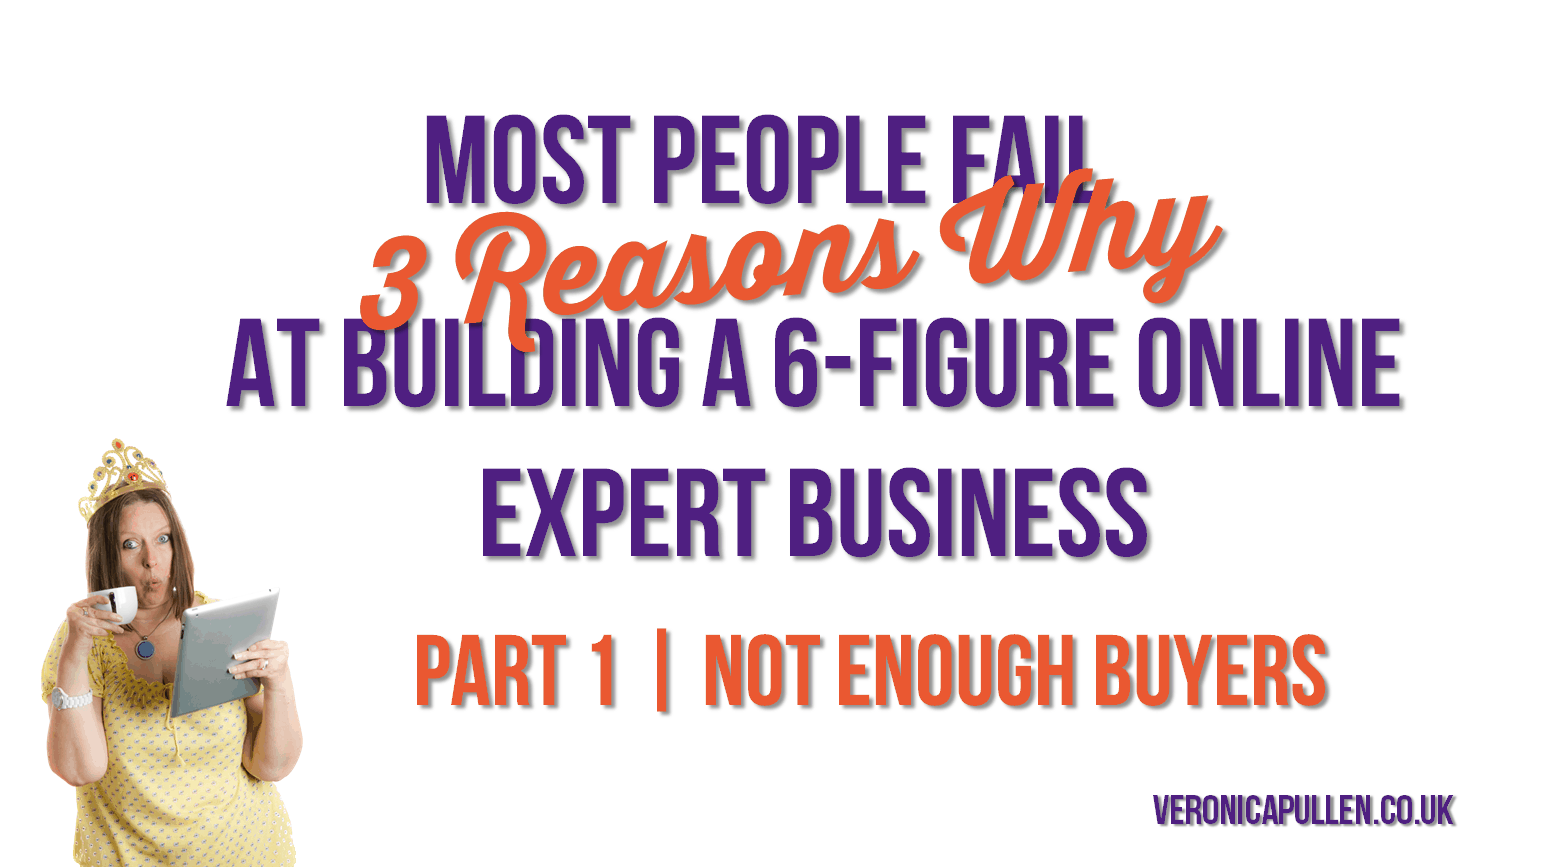 The Top 3 Reasons Why Most People Fail To Build A 6-Figure Online Expert Business | Part 1: You Need More Customers